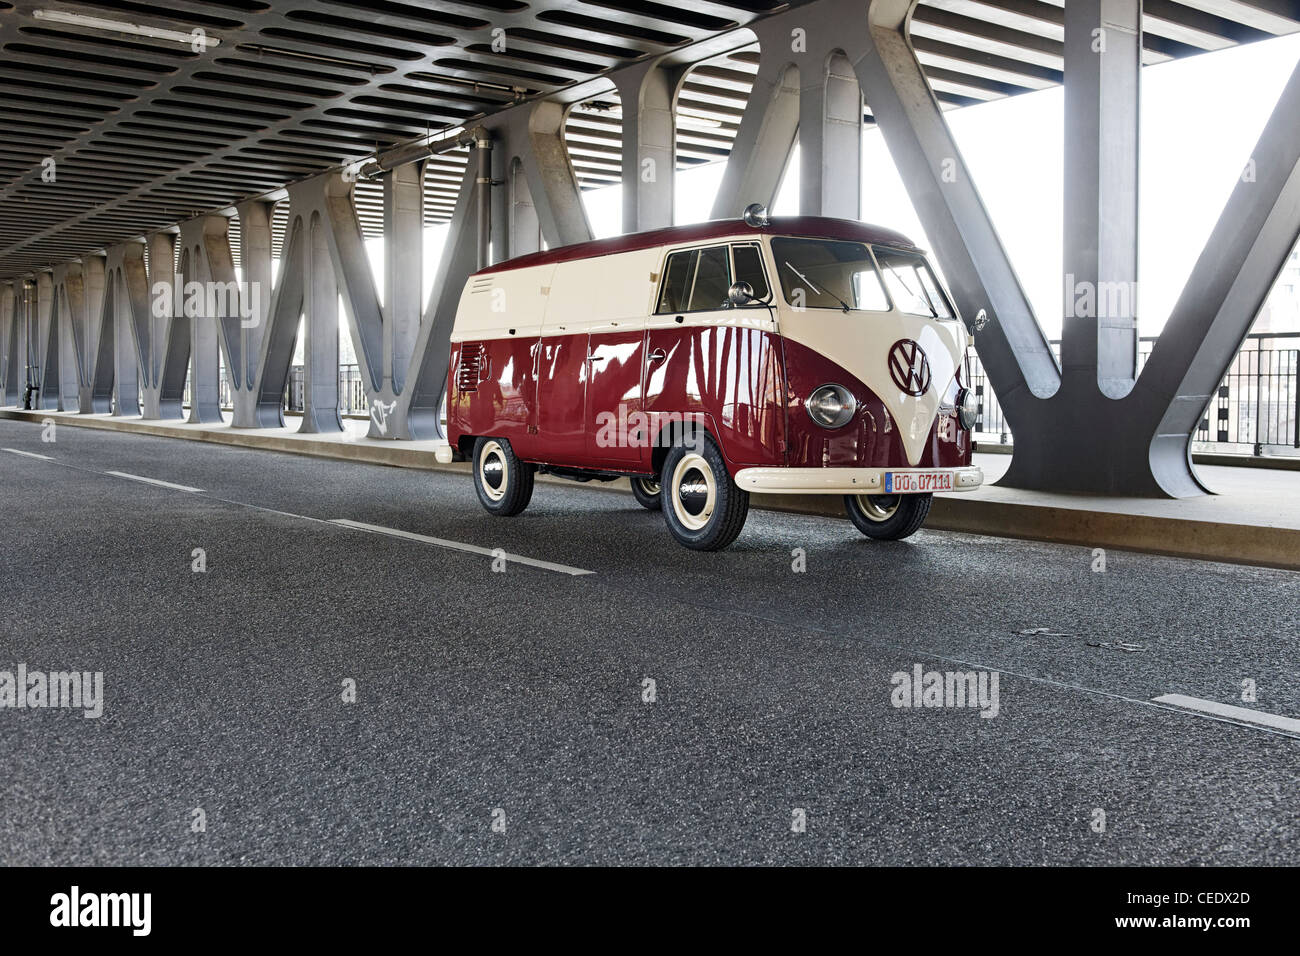 Vintage car, VW Bus T1, Oberhafenbrücke Upper Harbour Bridge, Hamburg, Germany, Europe - Stock Image